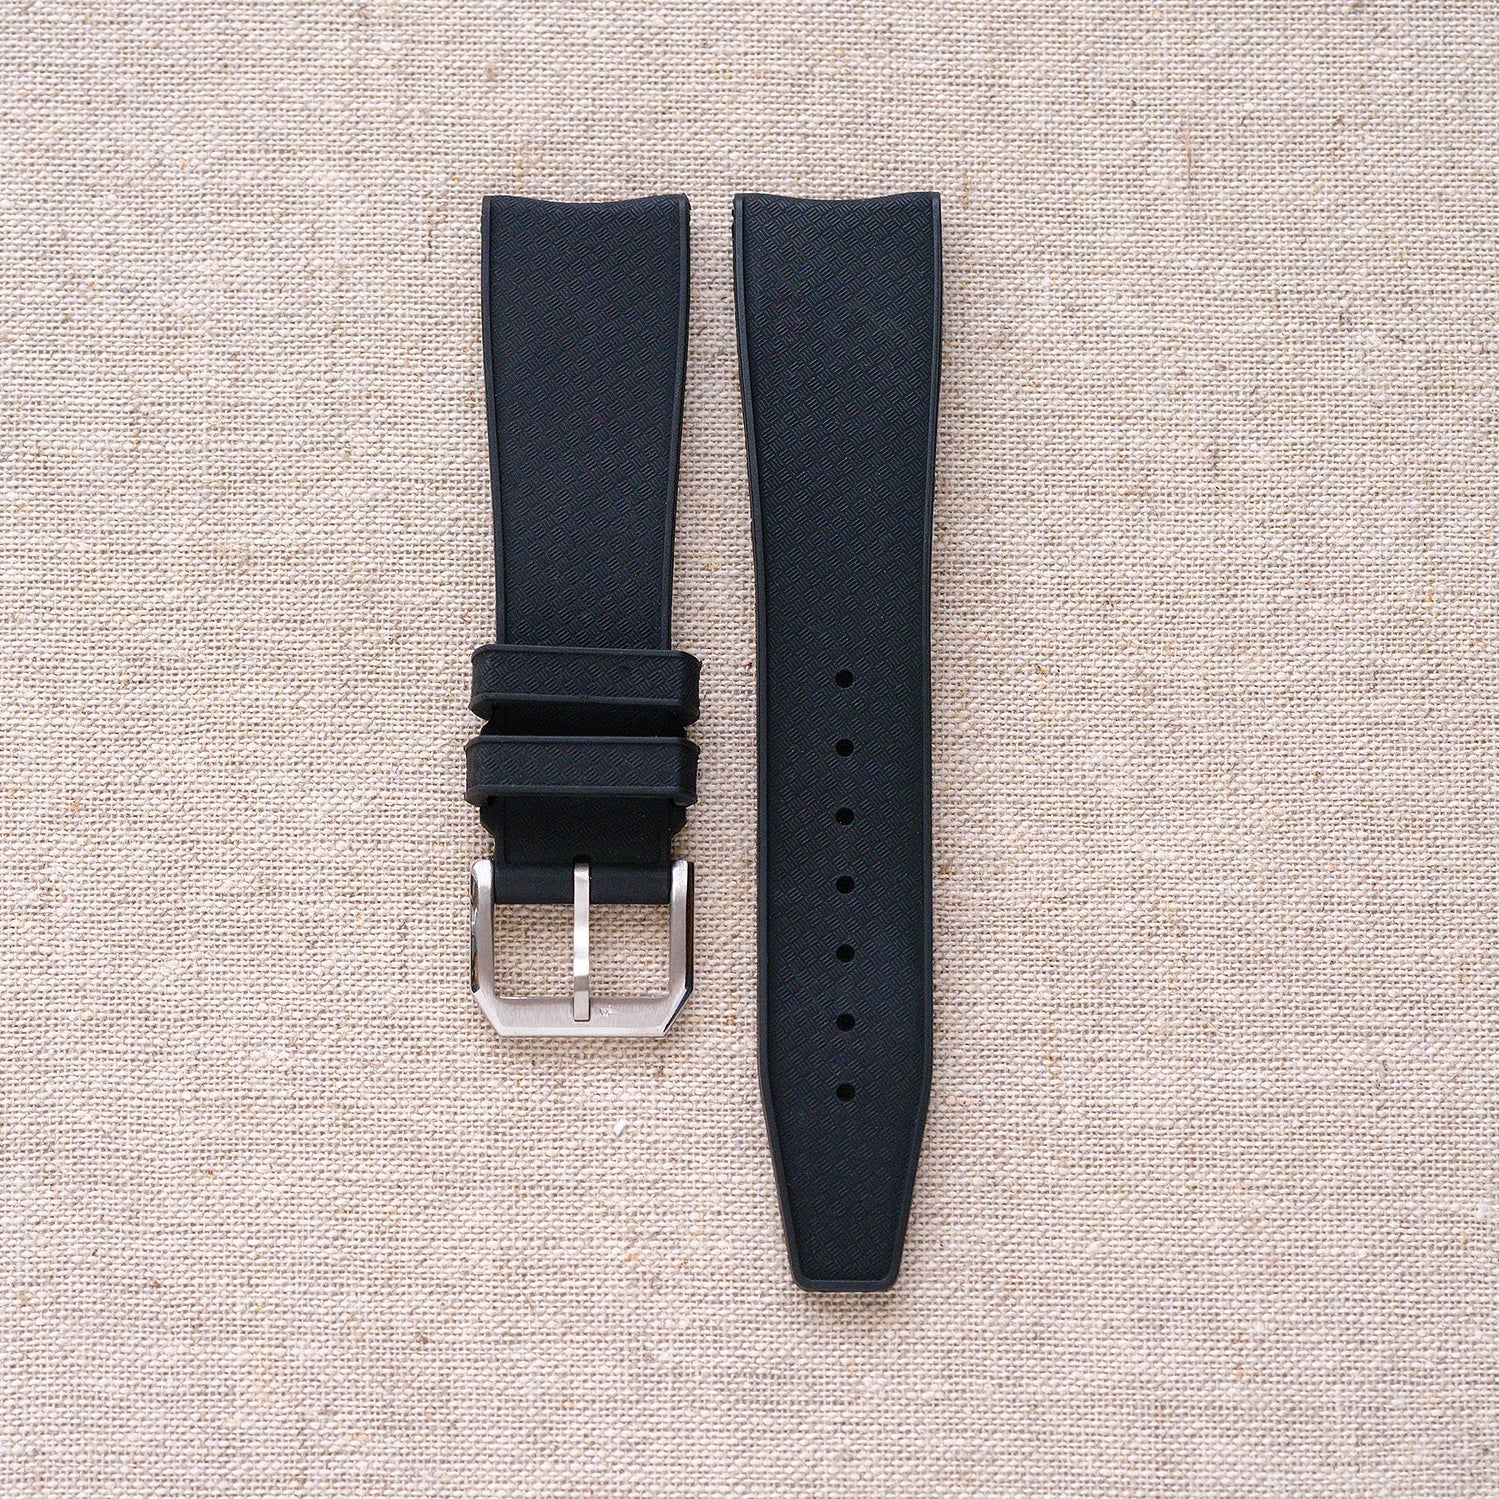 Rubber tropic strap